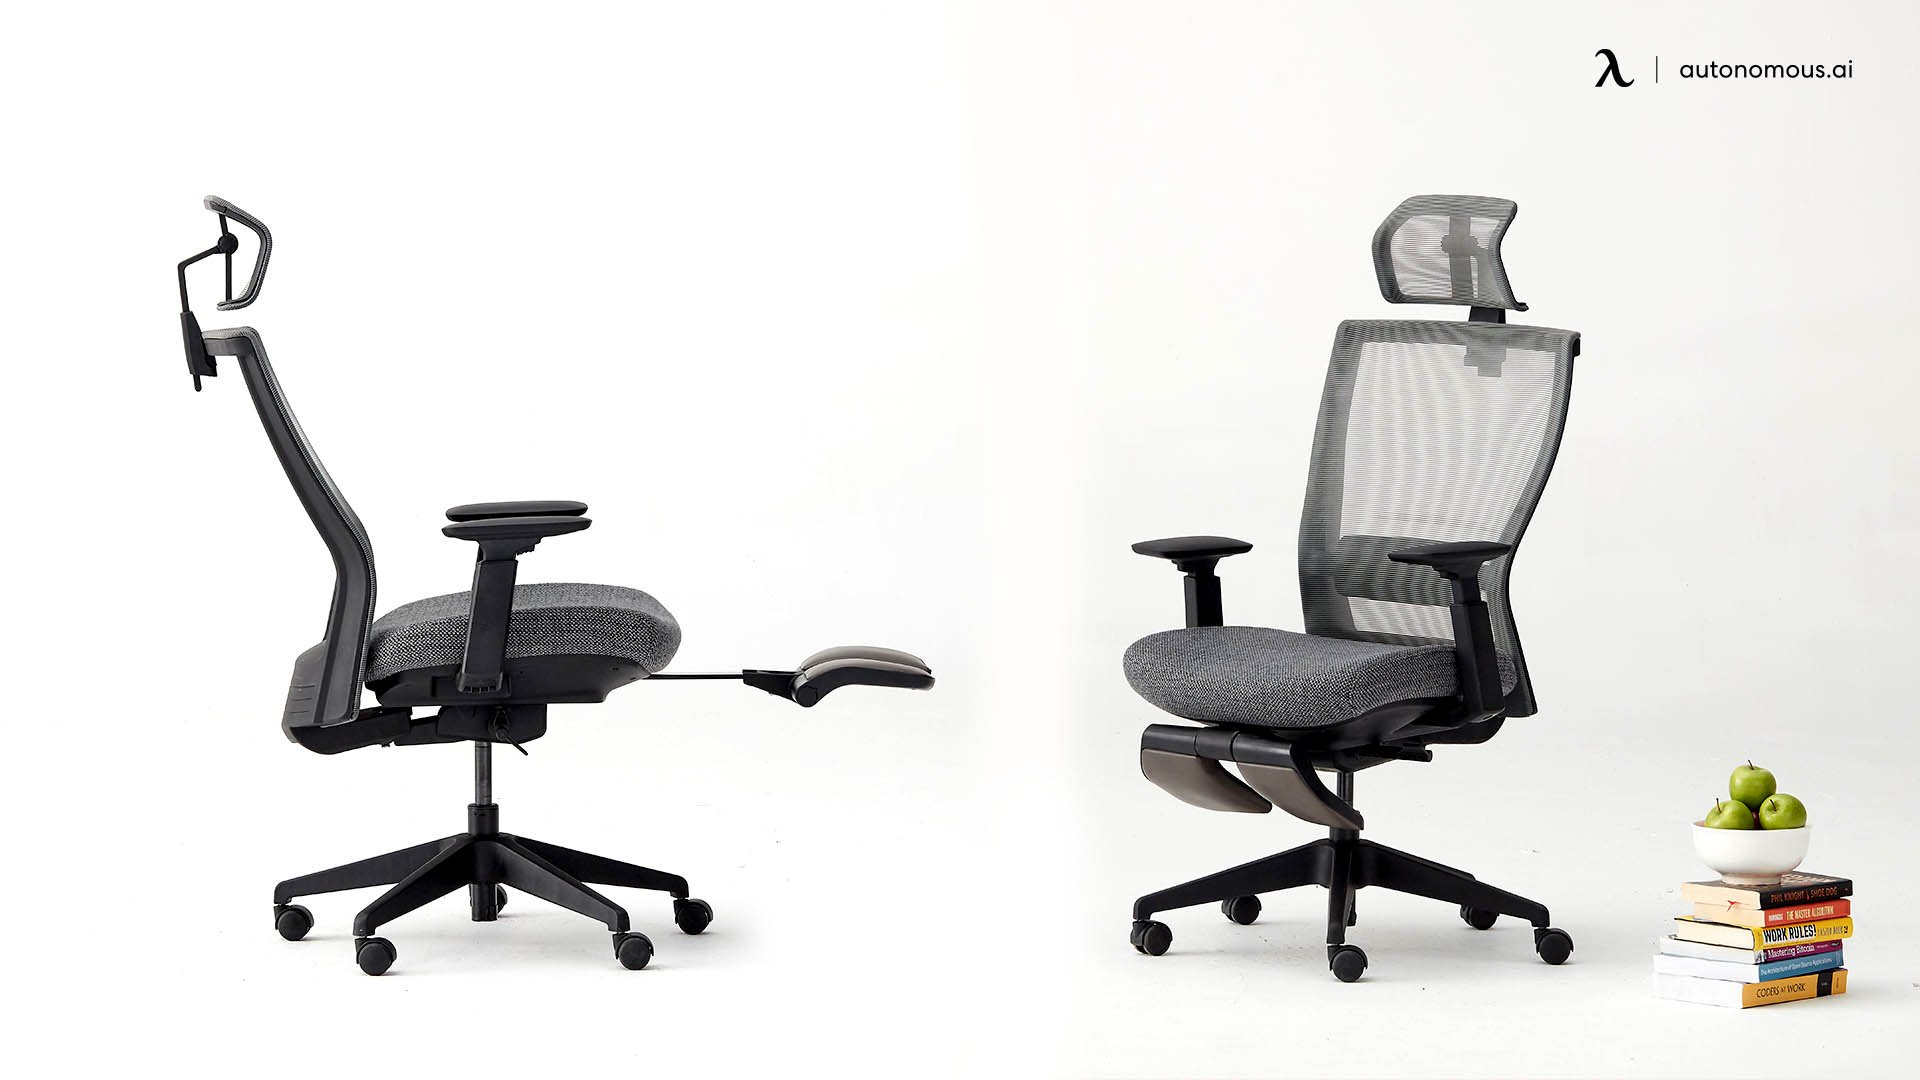 Health benefit from ergonomic chair